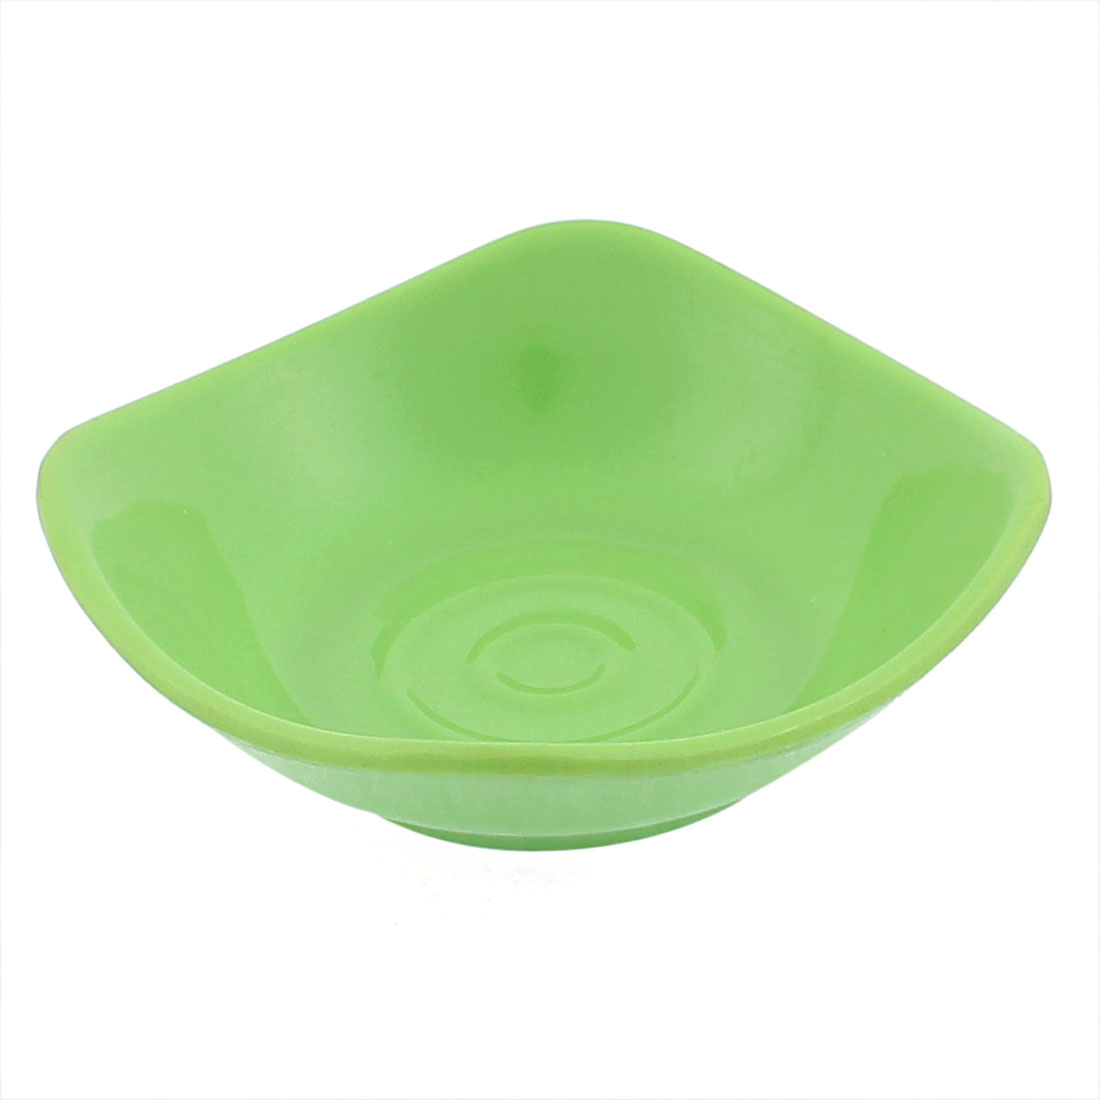 Plastic Square Shape Soy Sauce Dipping Sushi Dish Plate Green